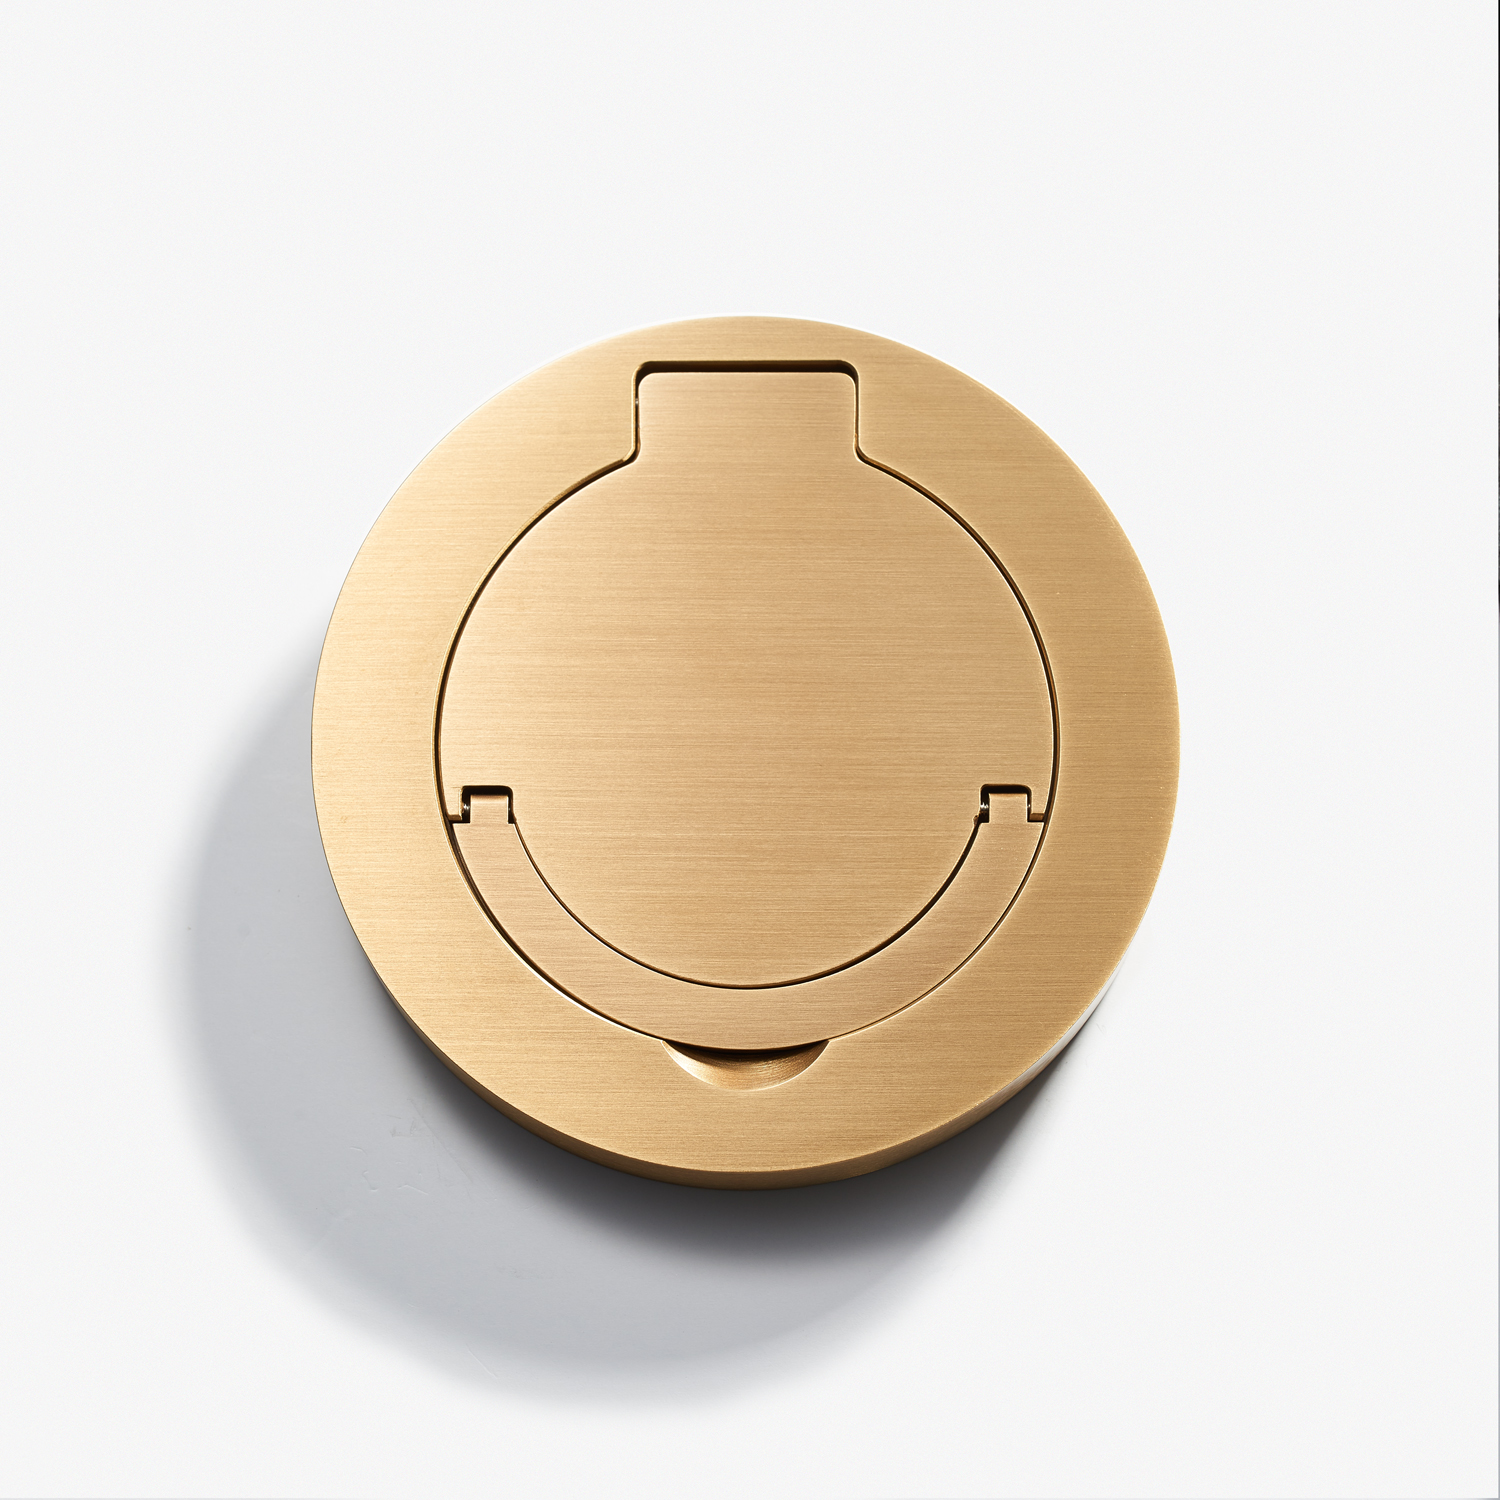 100D - Round Floor Outlet - Water Resistant - Bronze Médaille Clair.jpg